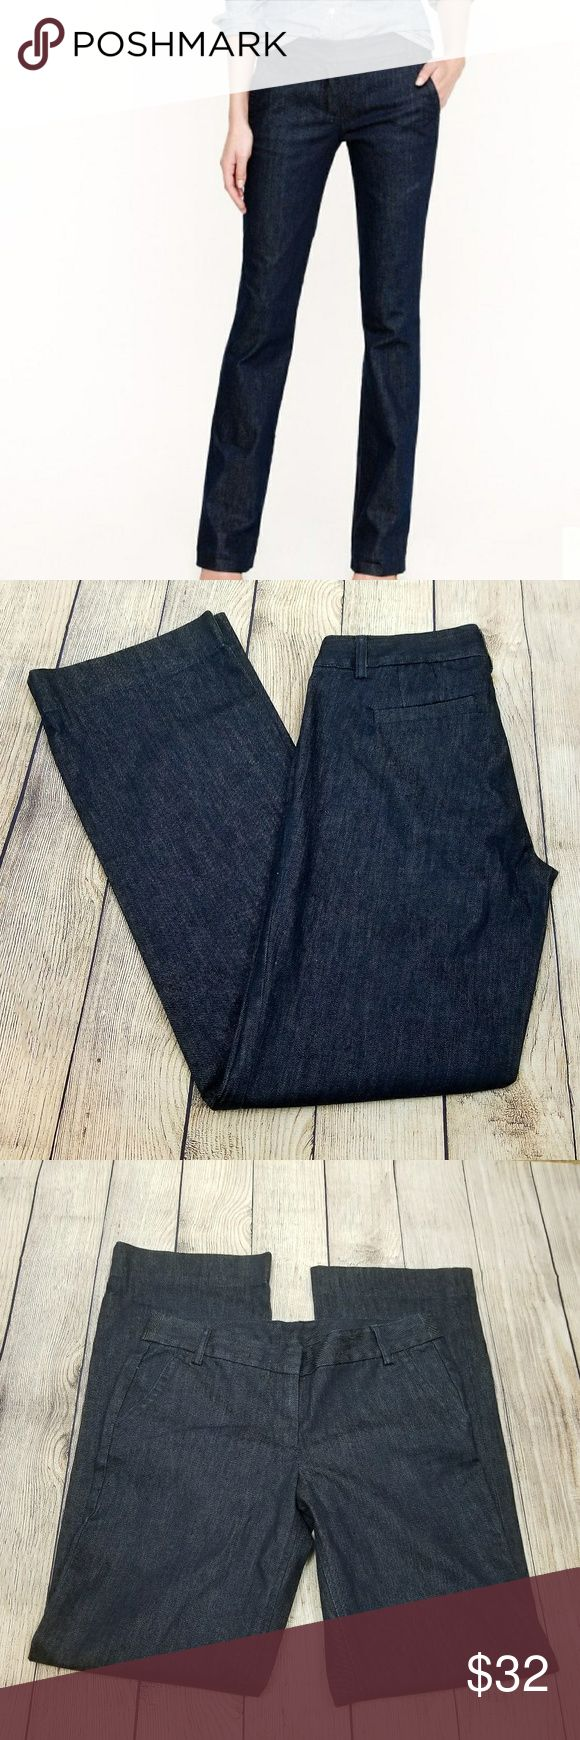 NWT Tall trouser jean rinse wash  8 New with tags. Please see pictures for measurement. Pet free and smoke free home. J. Crew Jeans